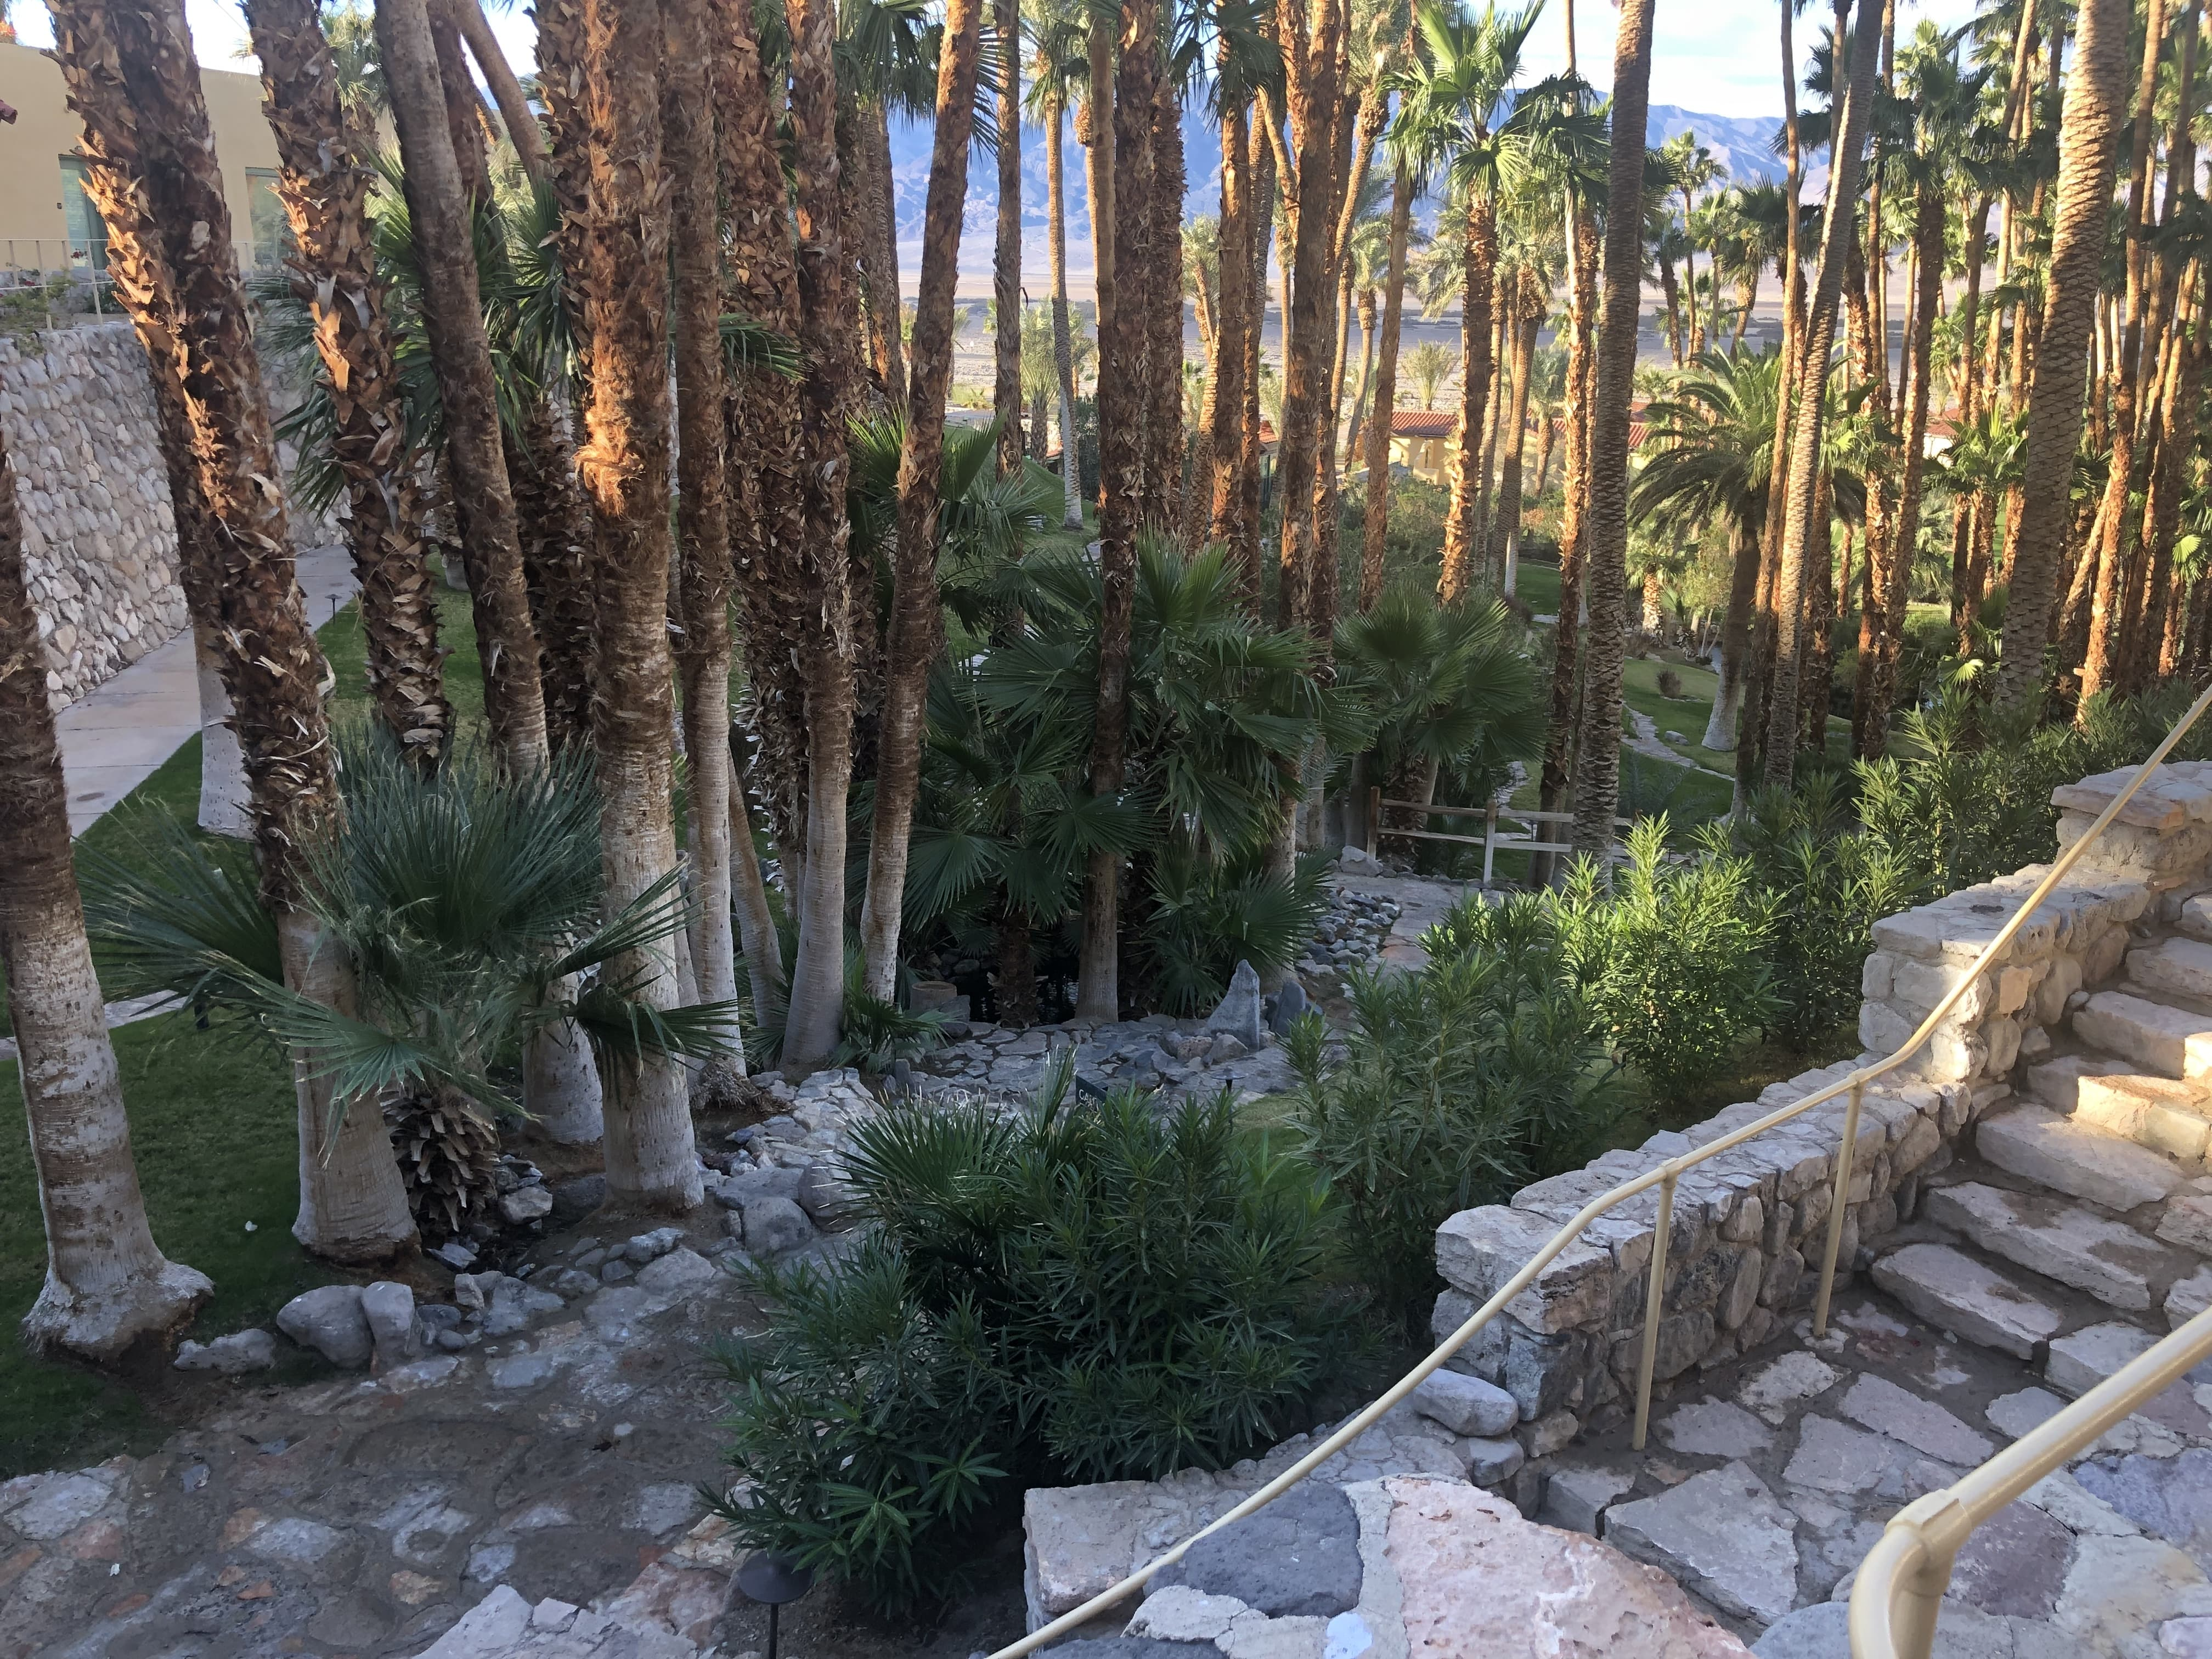 The Inn at Death Valley is covered by palm trees and spring water